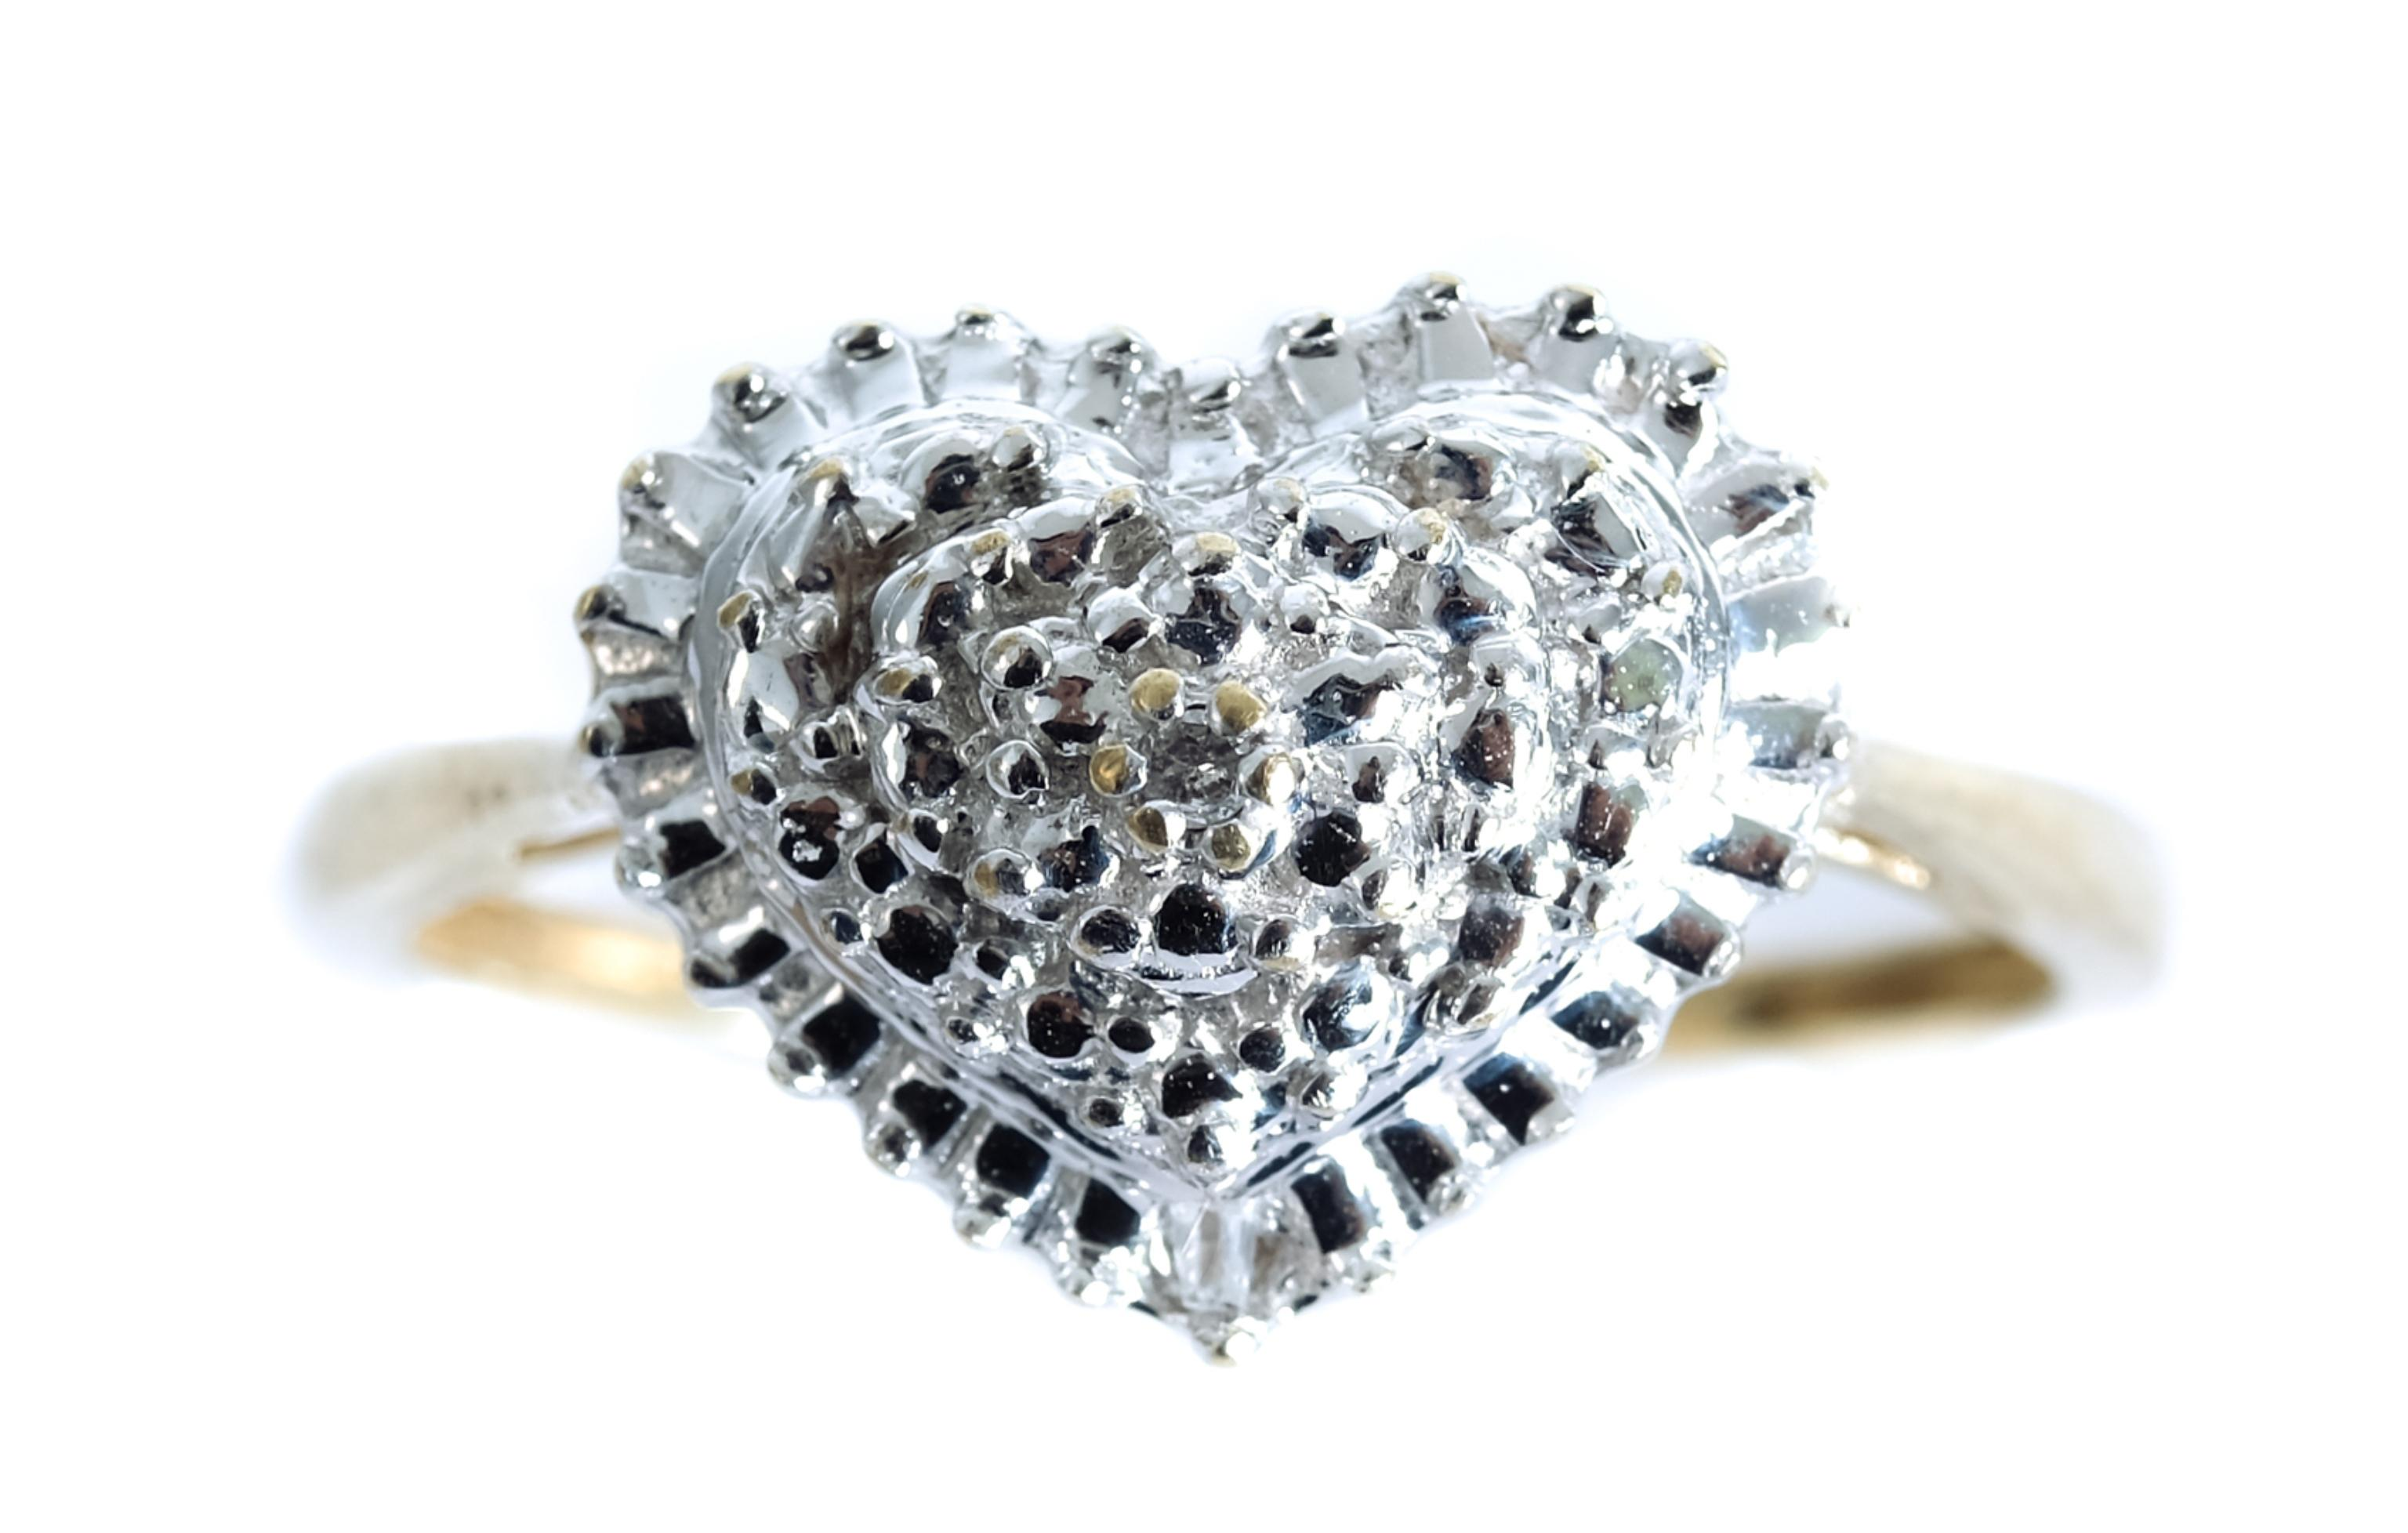 10k Yellow Gold White Gold Heart Ring, Size 7